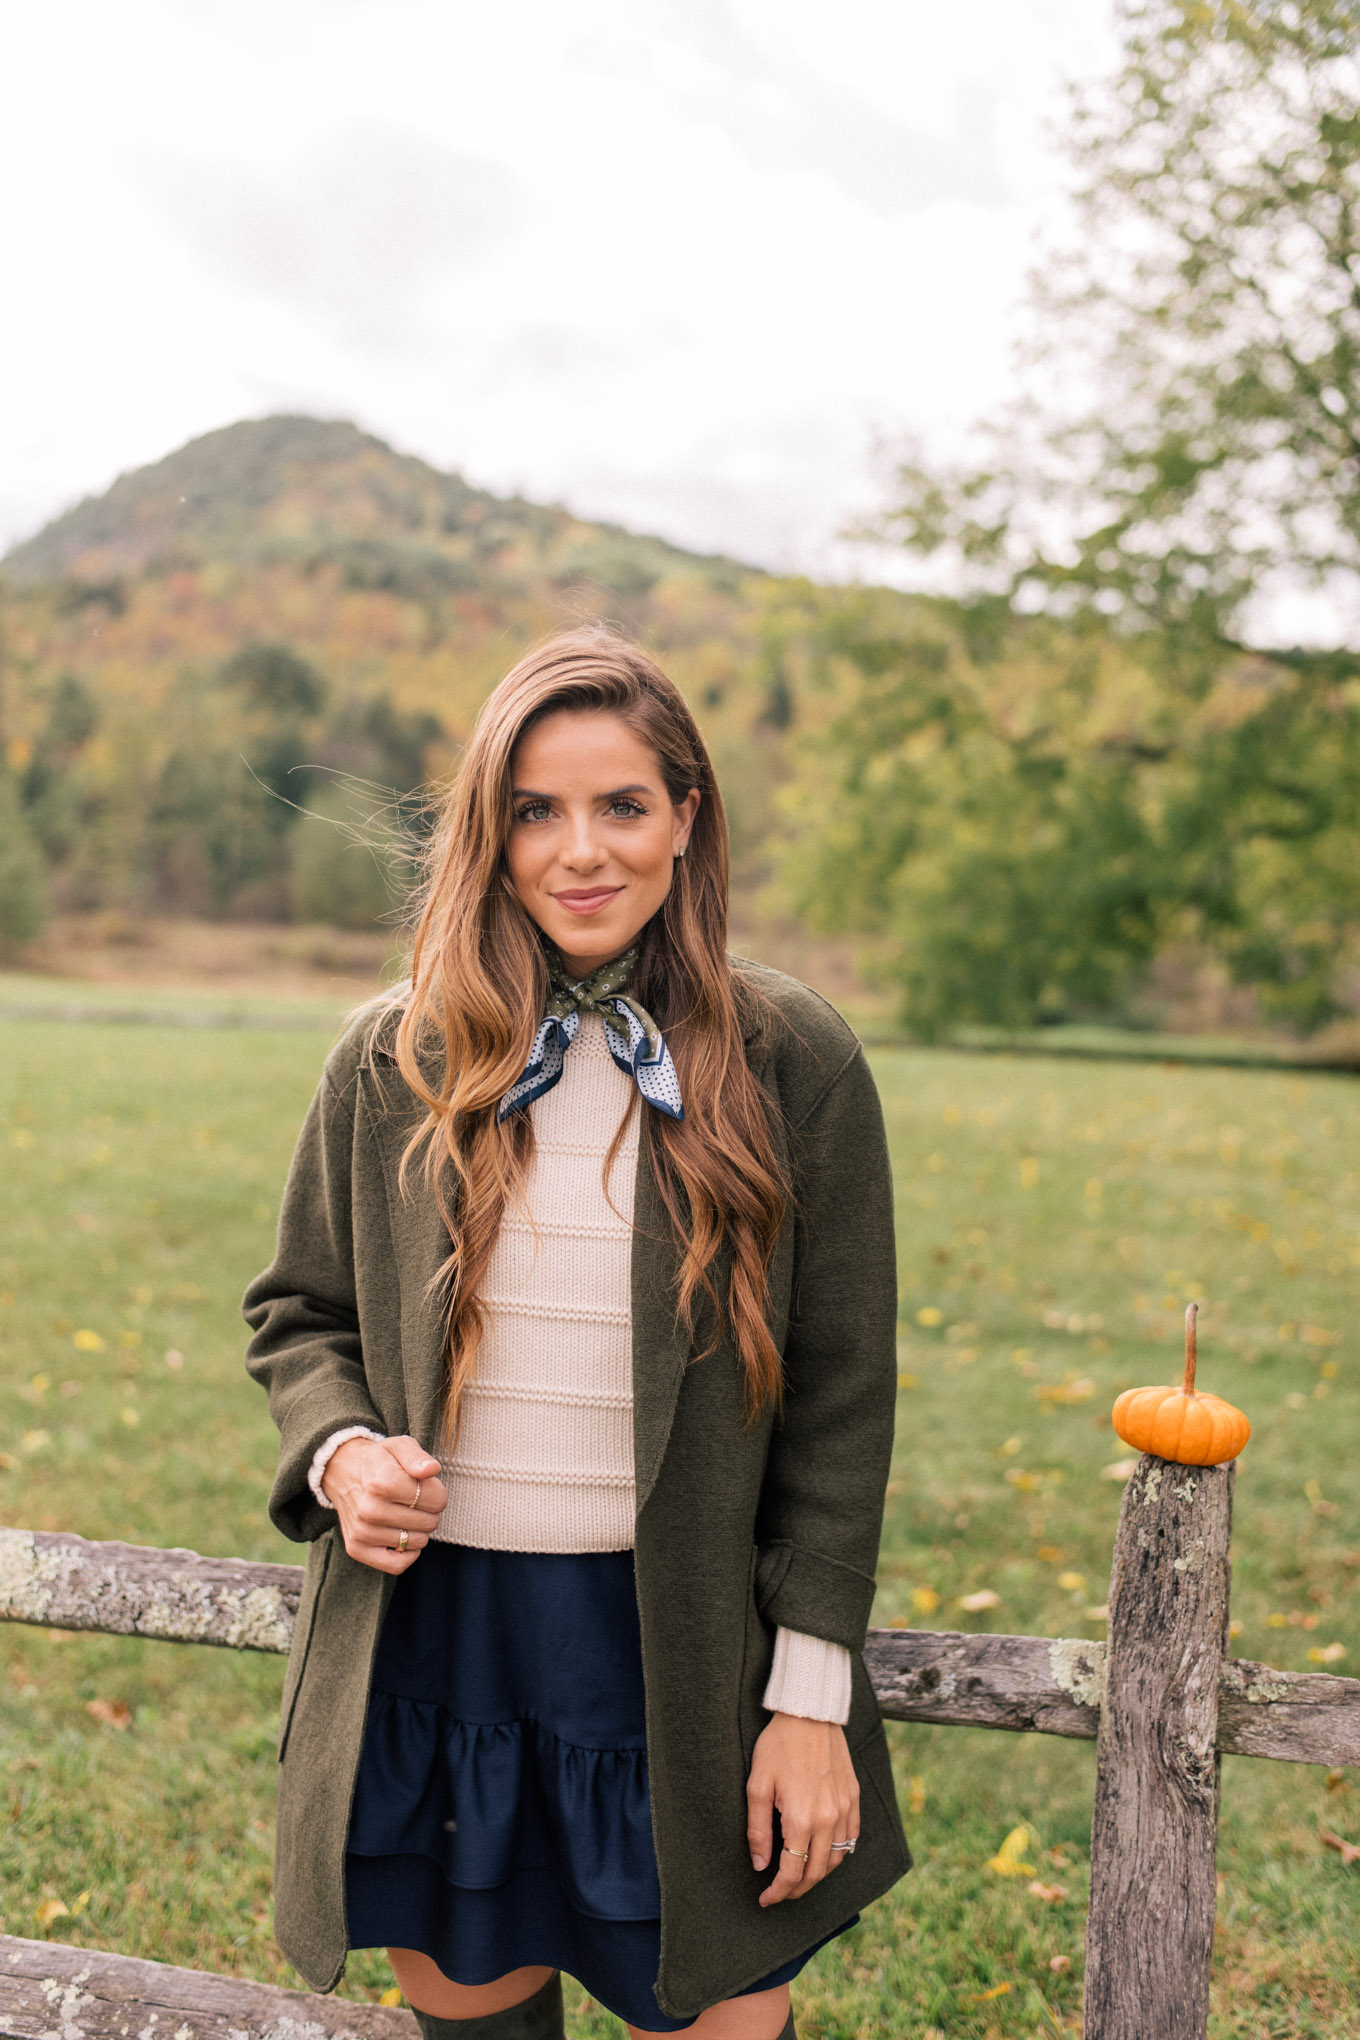 gmg-otk-boots-nordstrom-fall-outfit-1000266